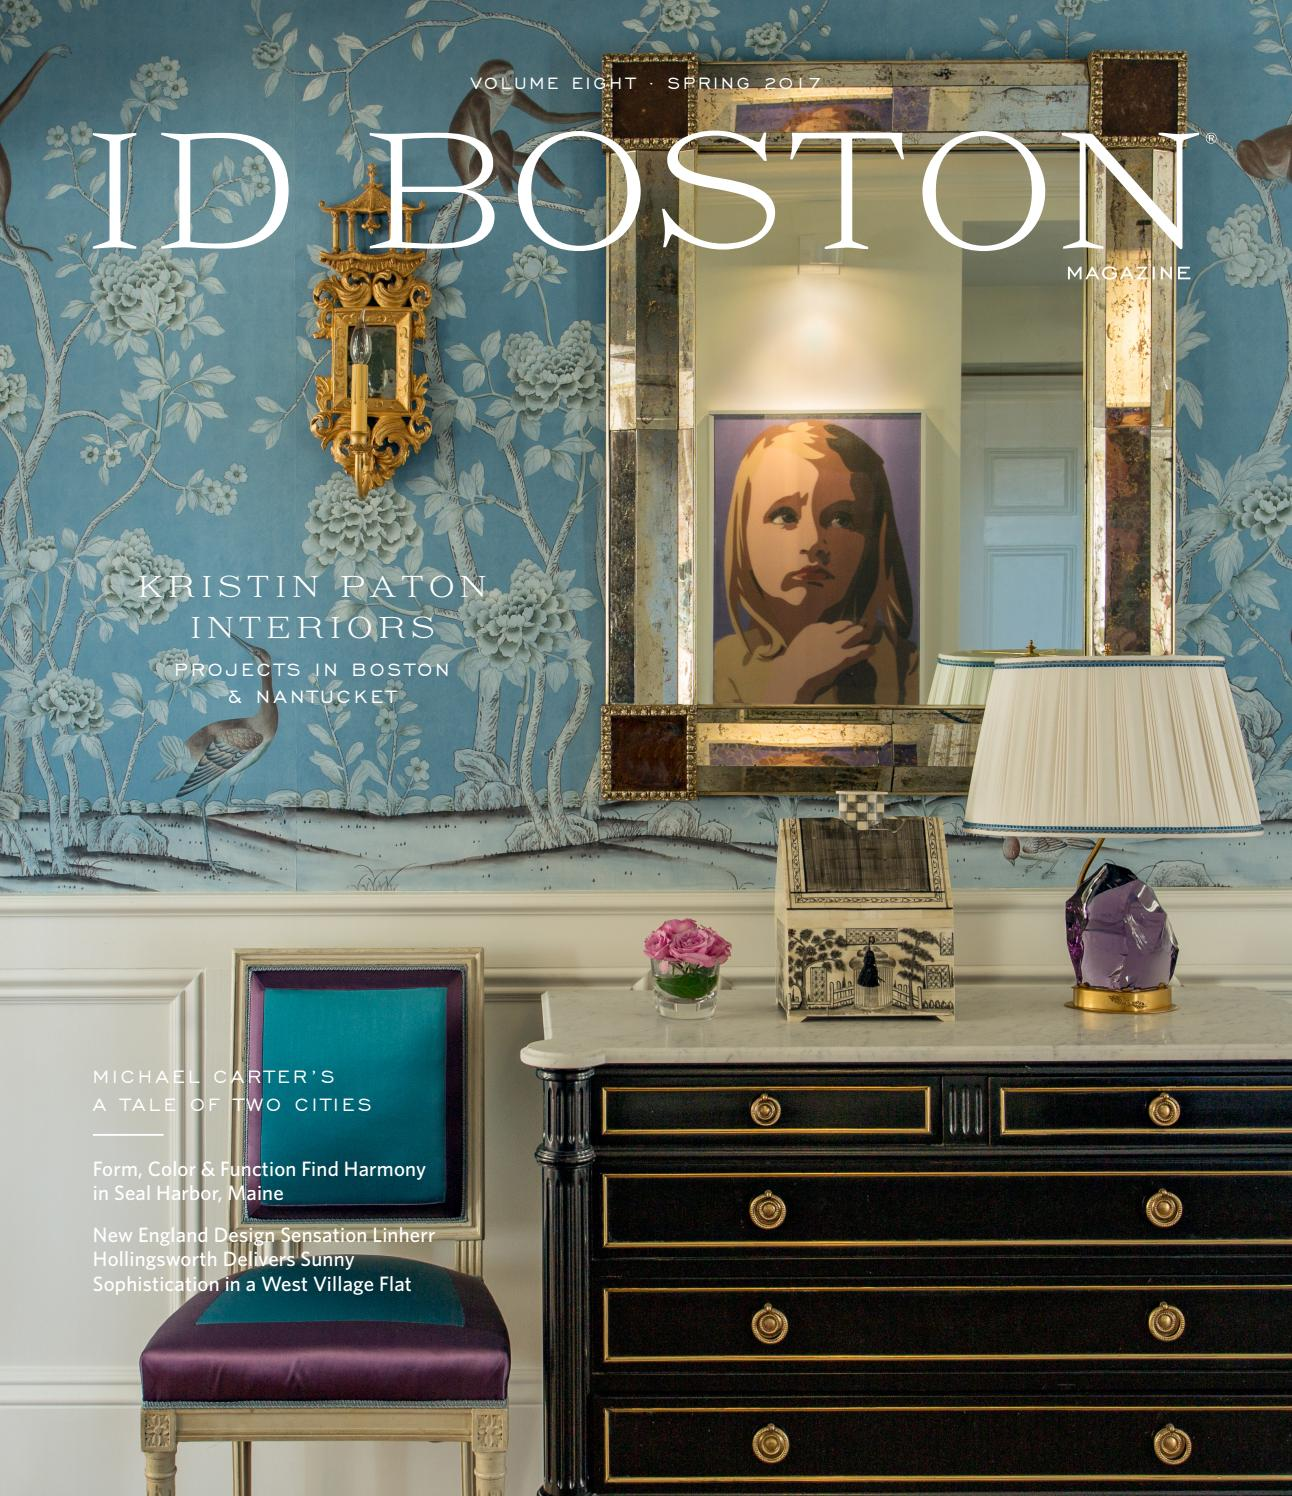 Id boston magazine vol 8 by bostondesigncenter issuu